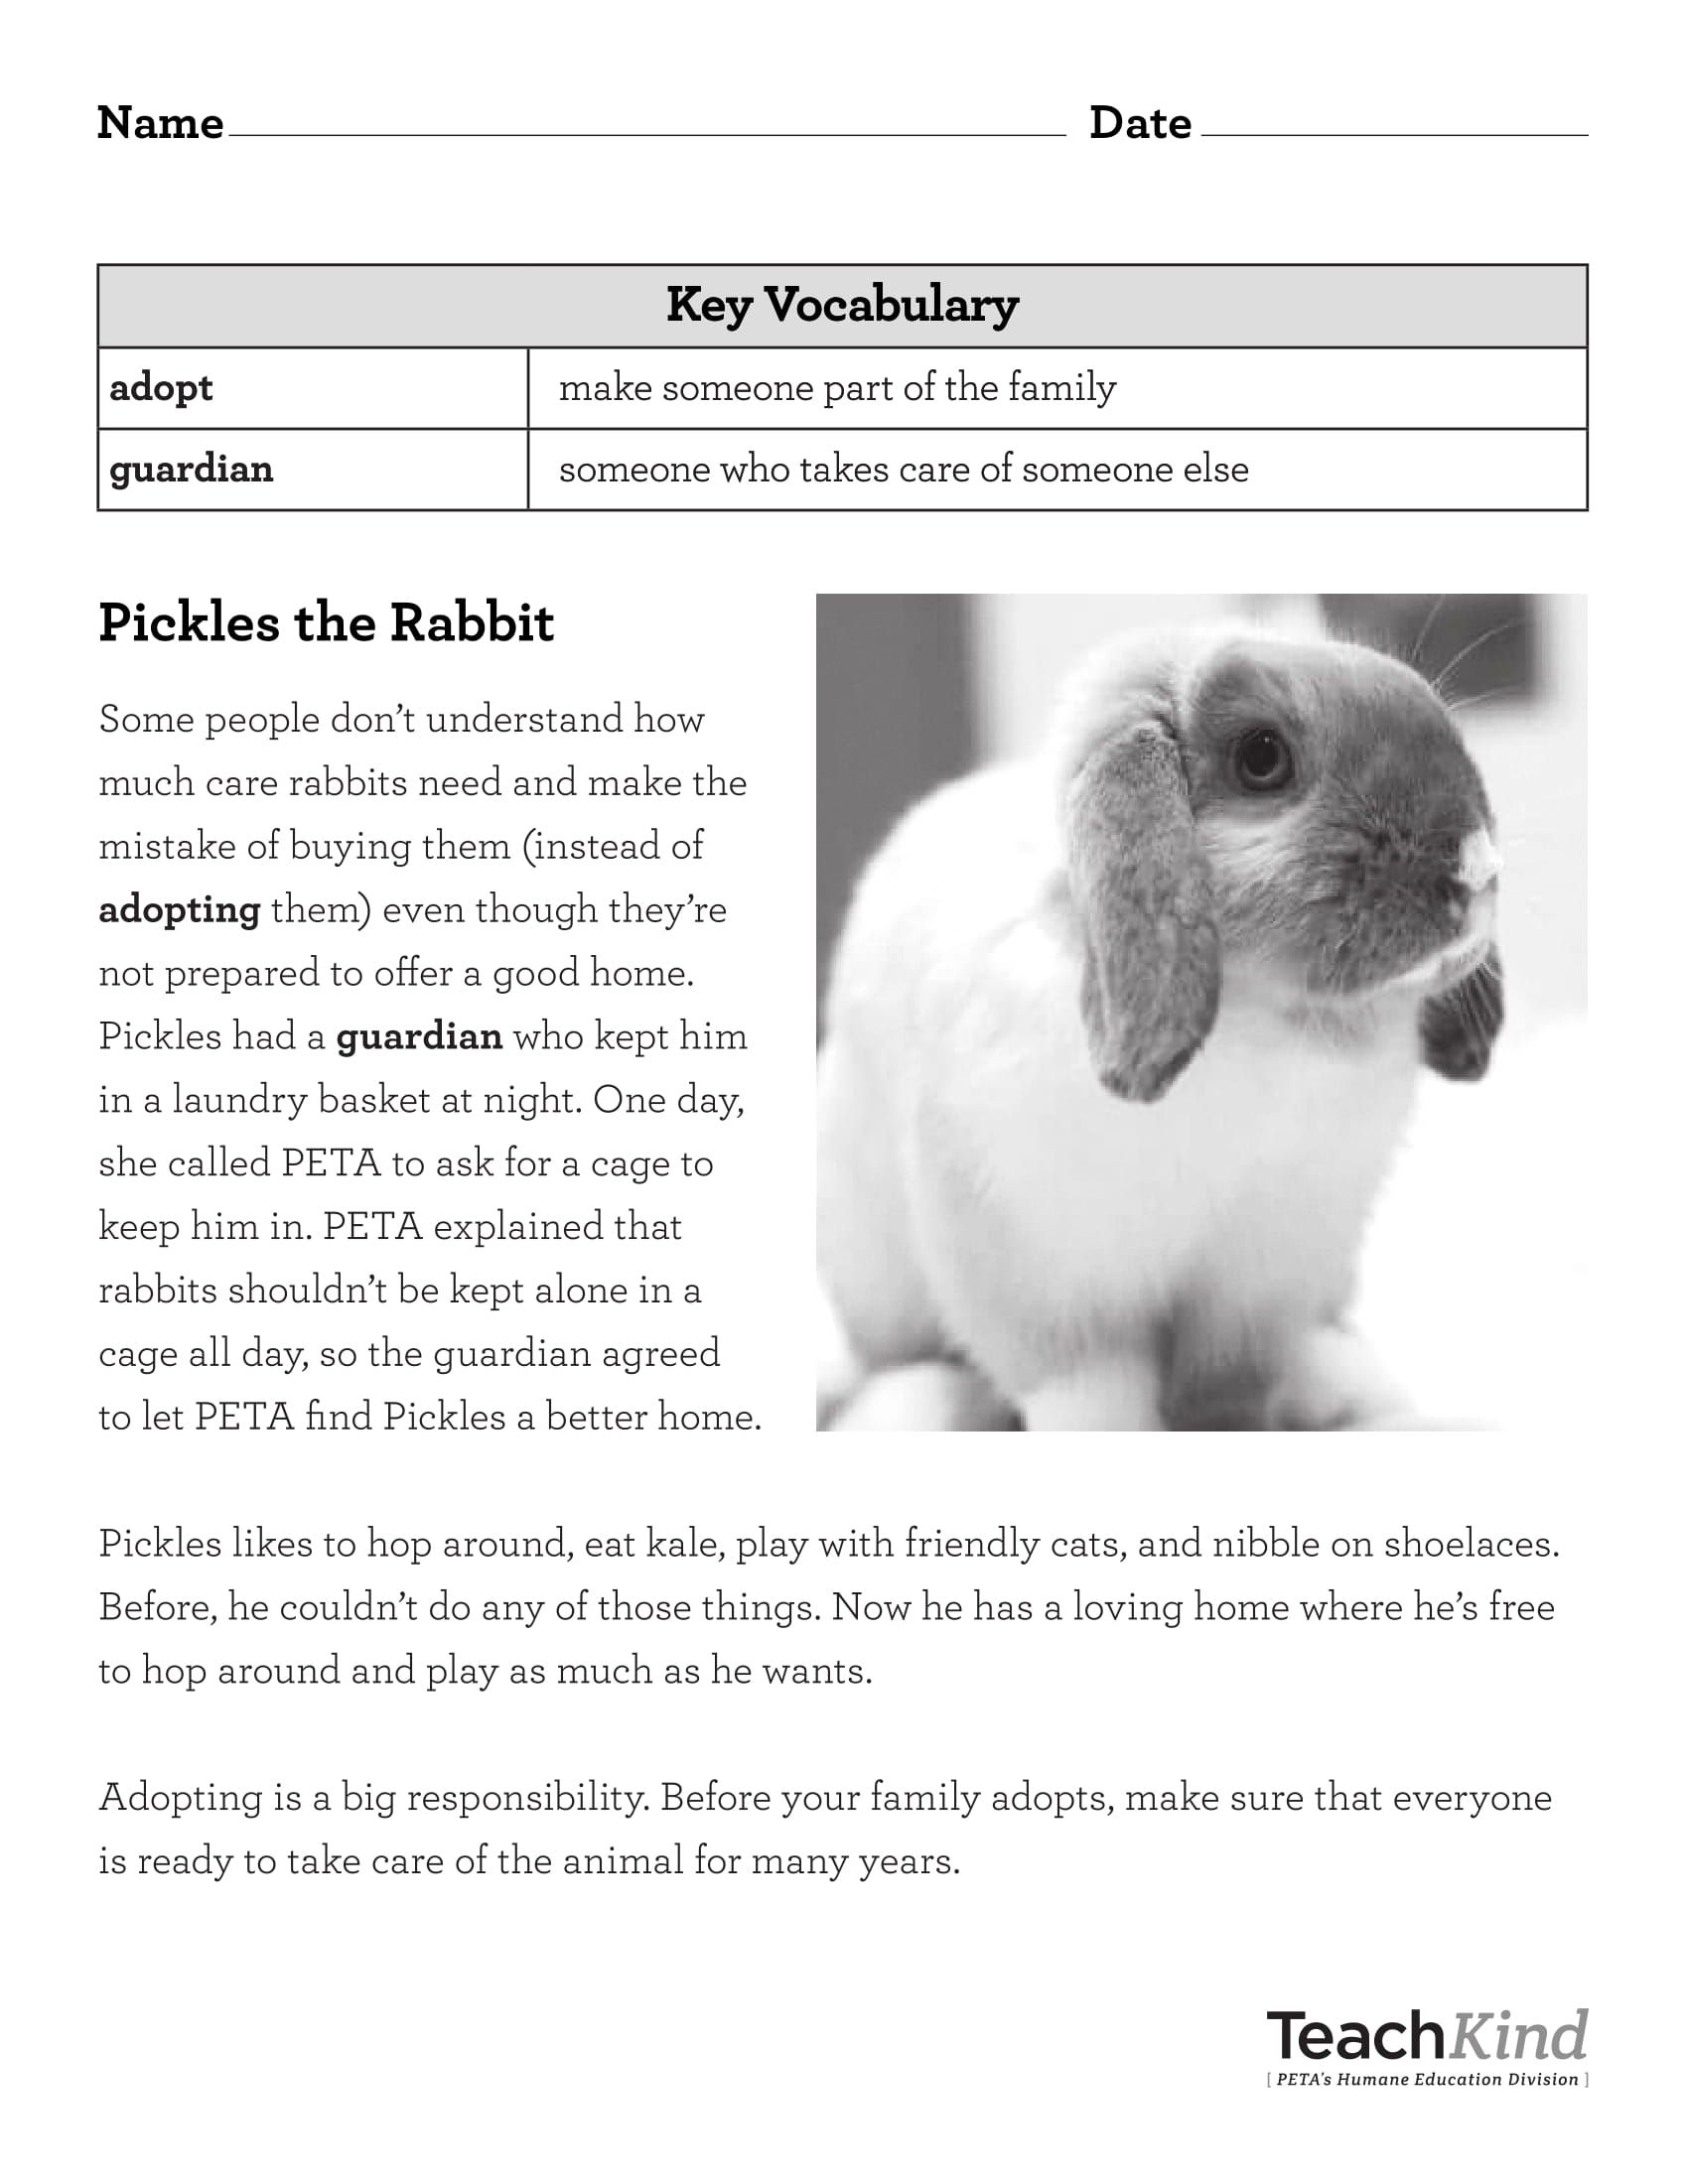 Teachkind Rescue Stories Pickles The Rabbit With Images